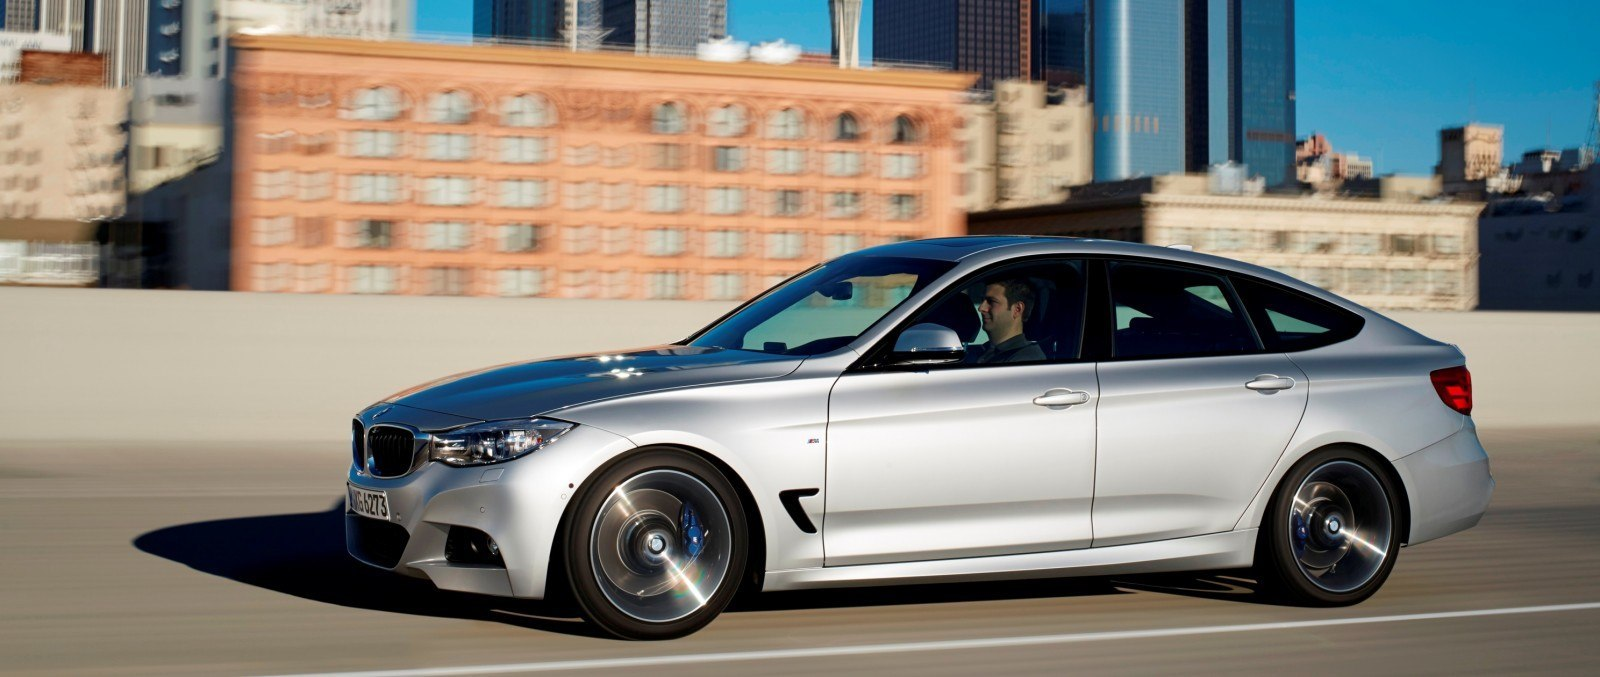 Best of Awards - 1000 miles at 100MPH - 2014 M Sport BMW 335i GT 52